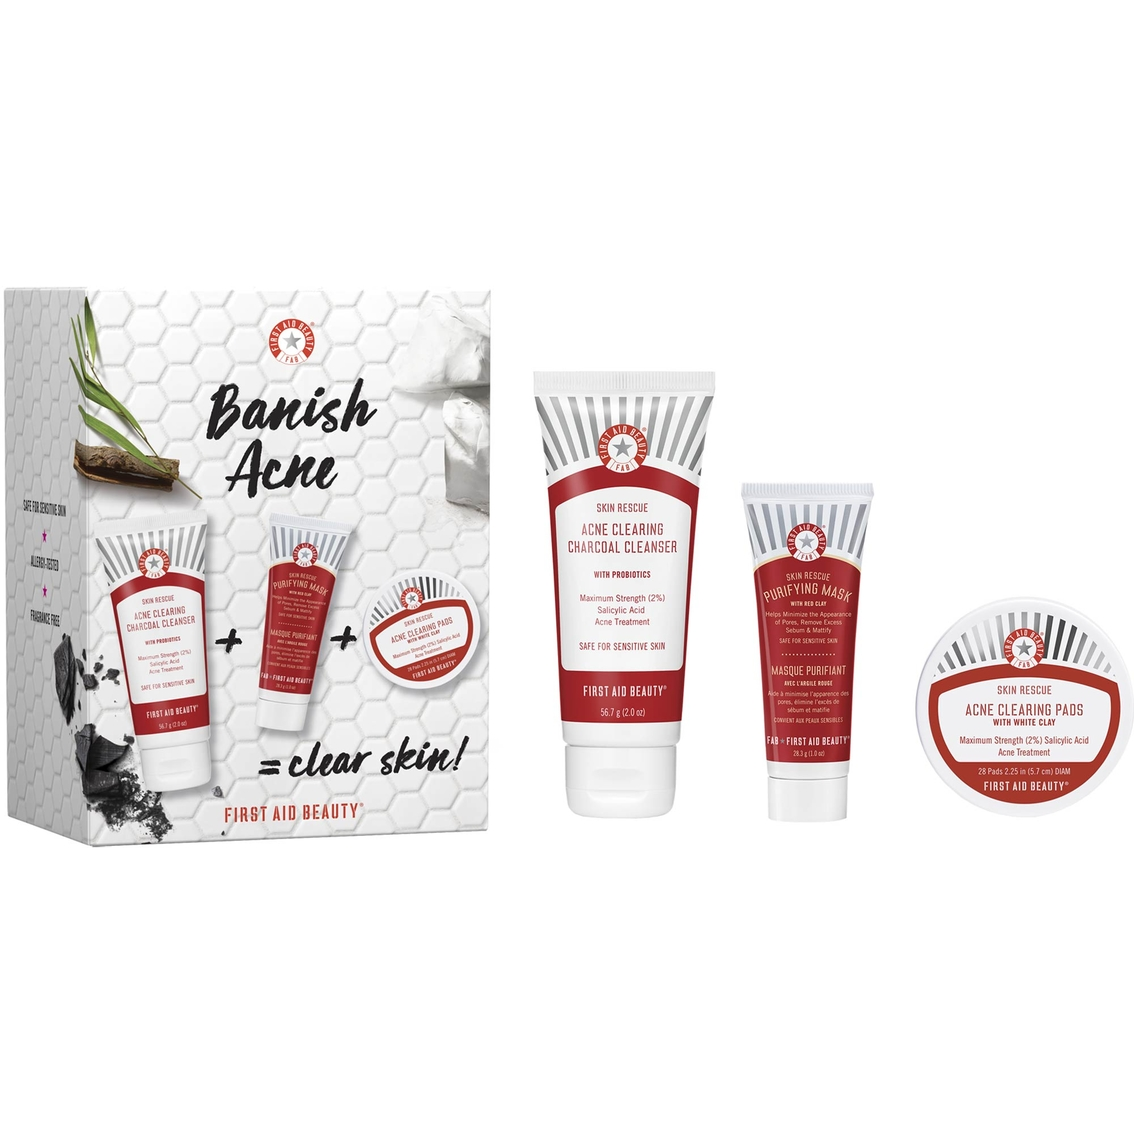 Health And Beauty Aids: First Aid Beauty Banish Acne Kit